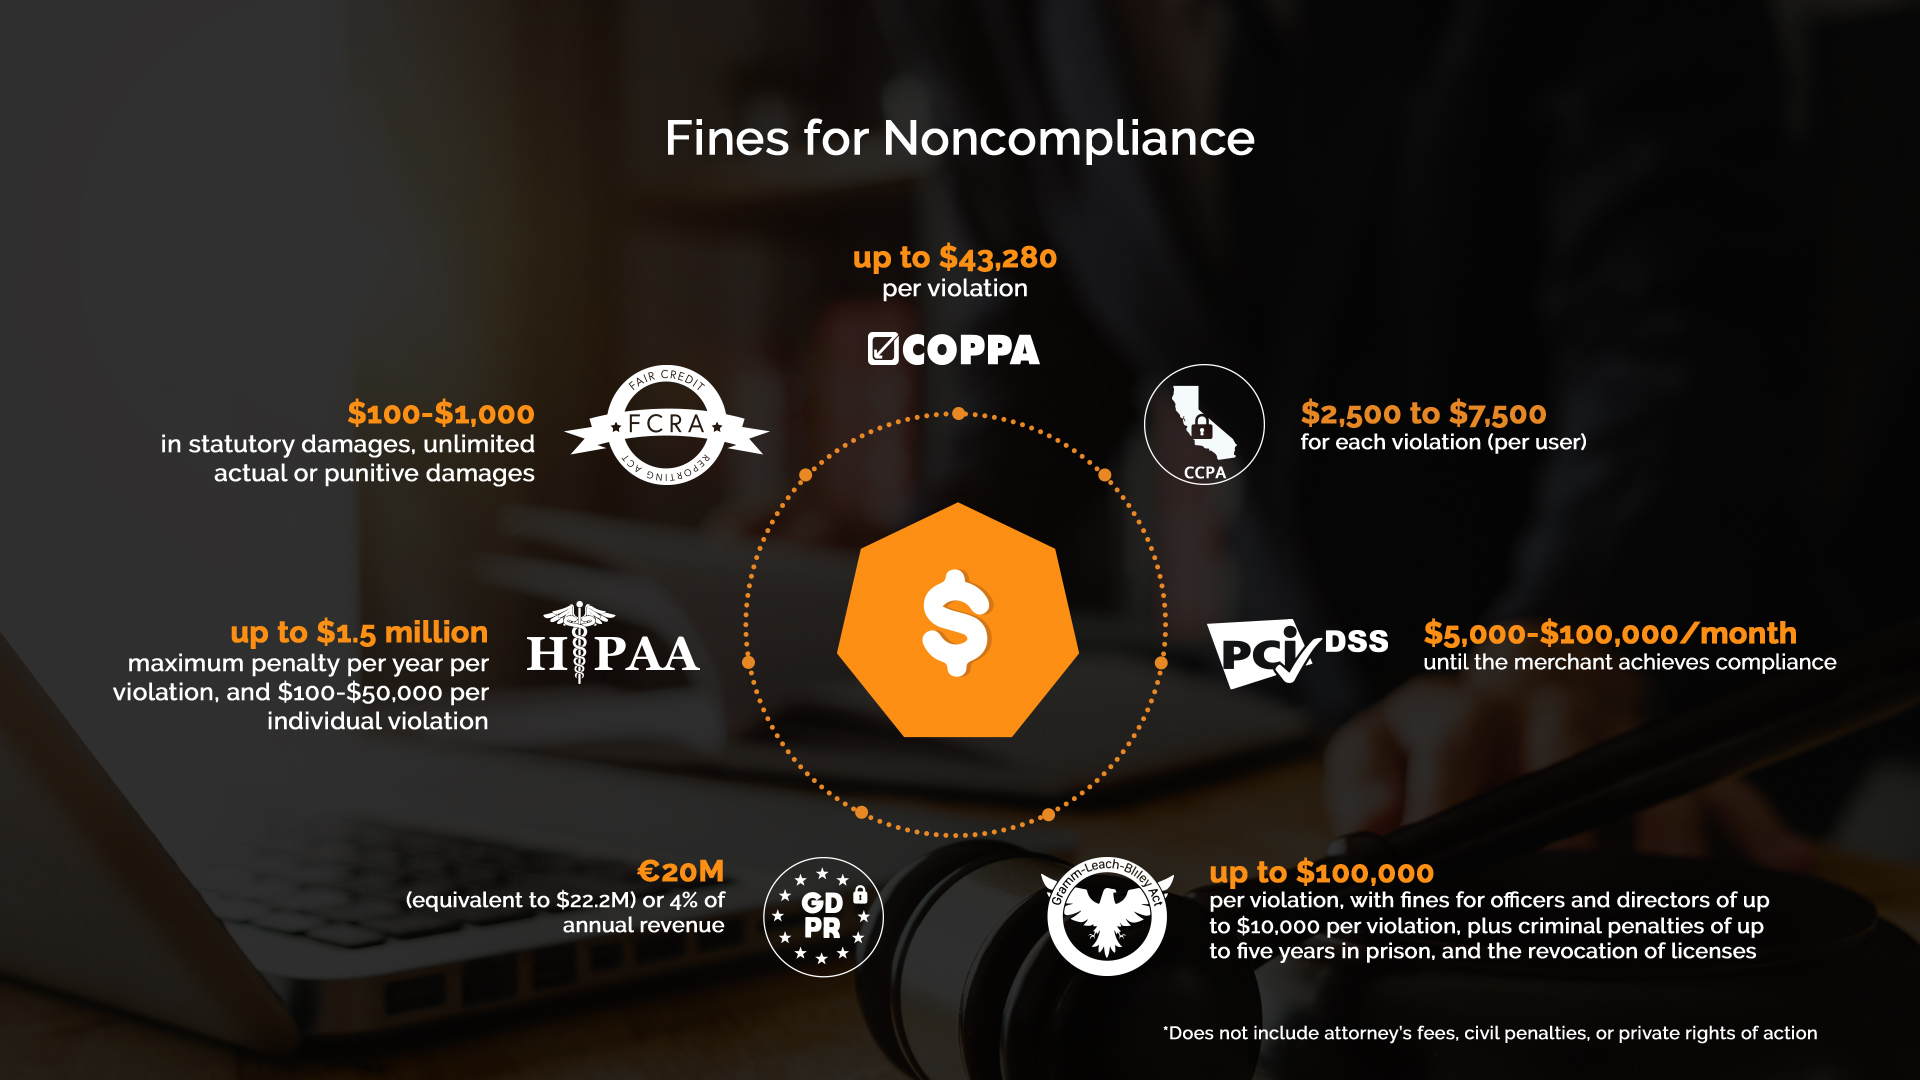 Noncompliance fines